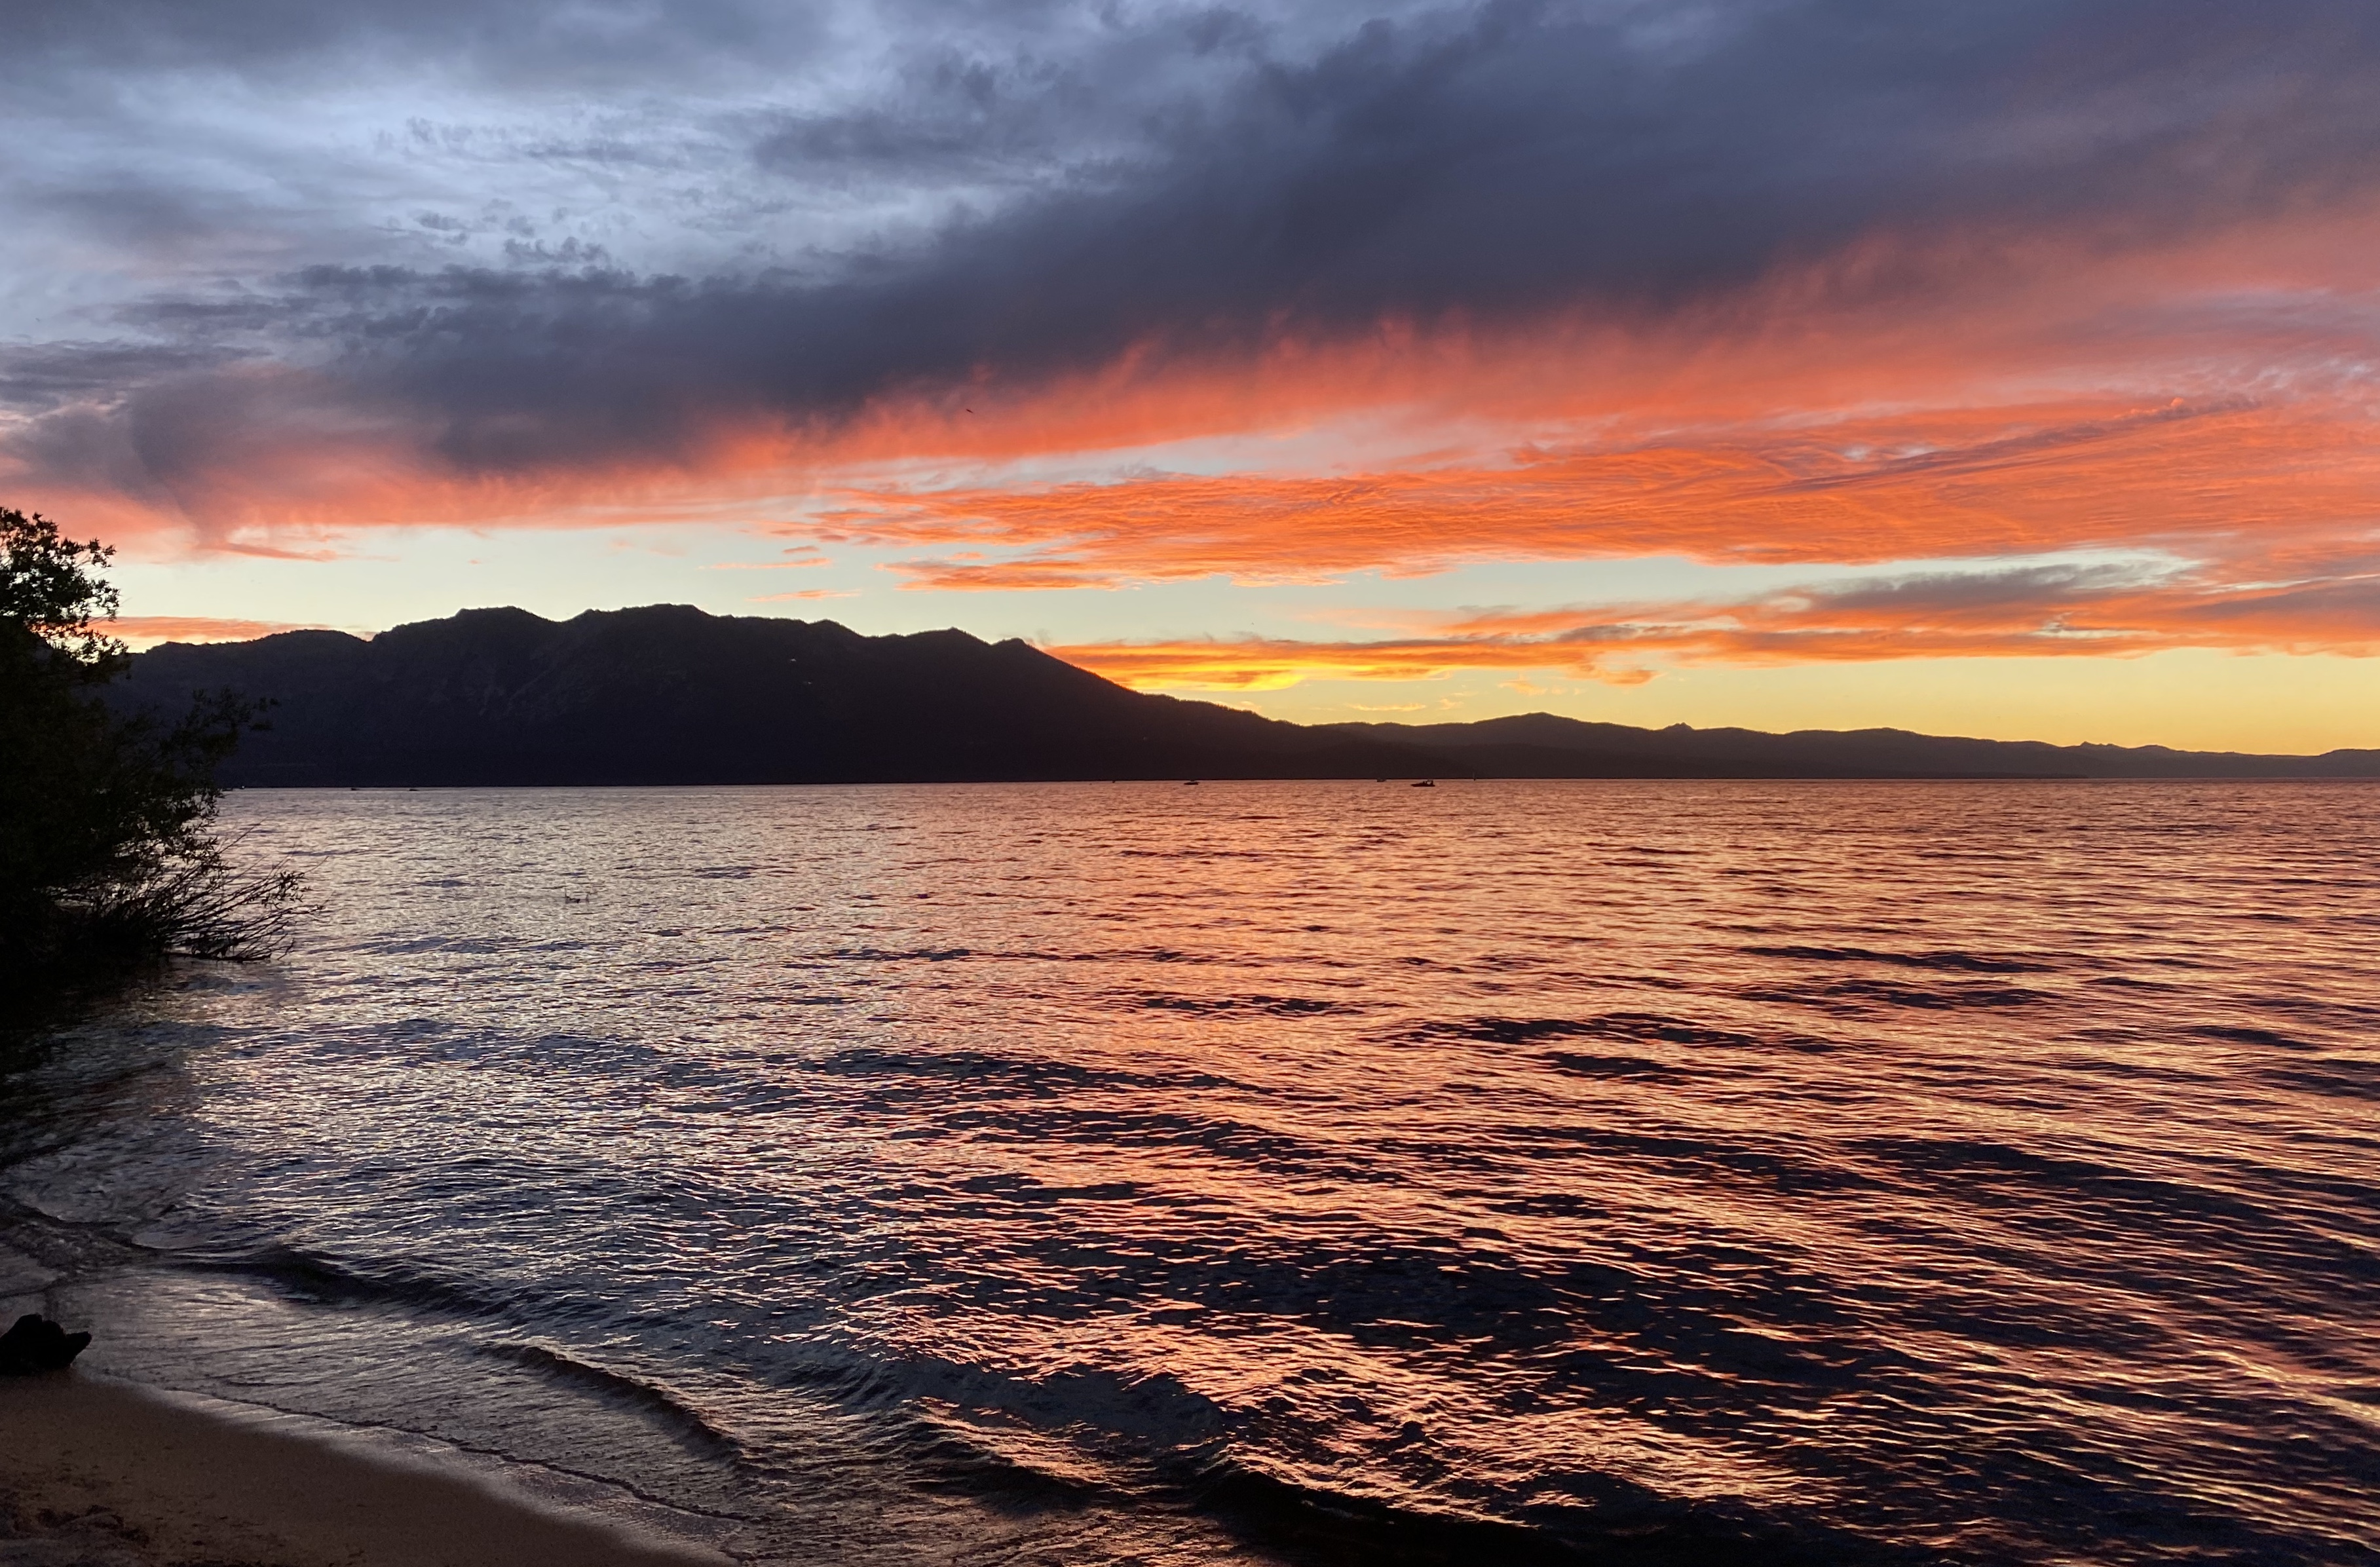 Find a secluded spot to watch the sunset at Tahoe Keys Beach